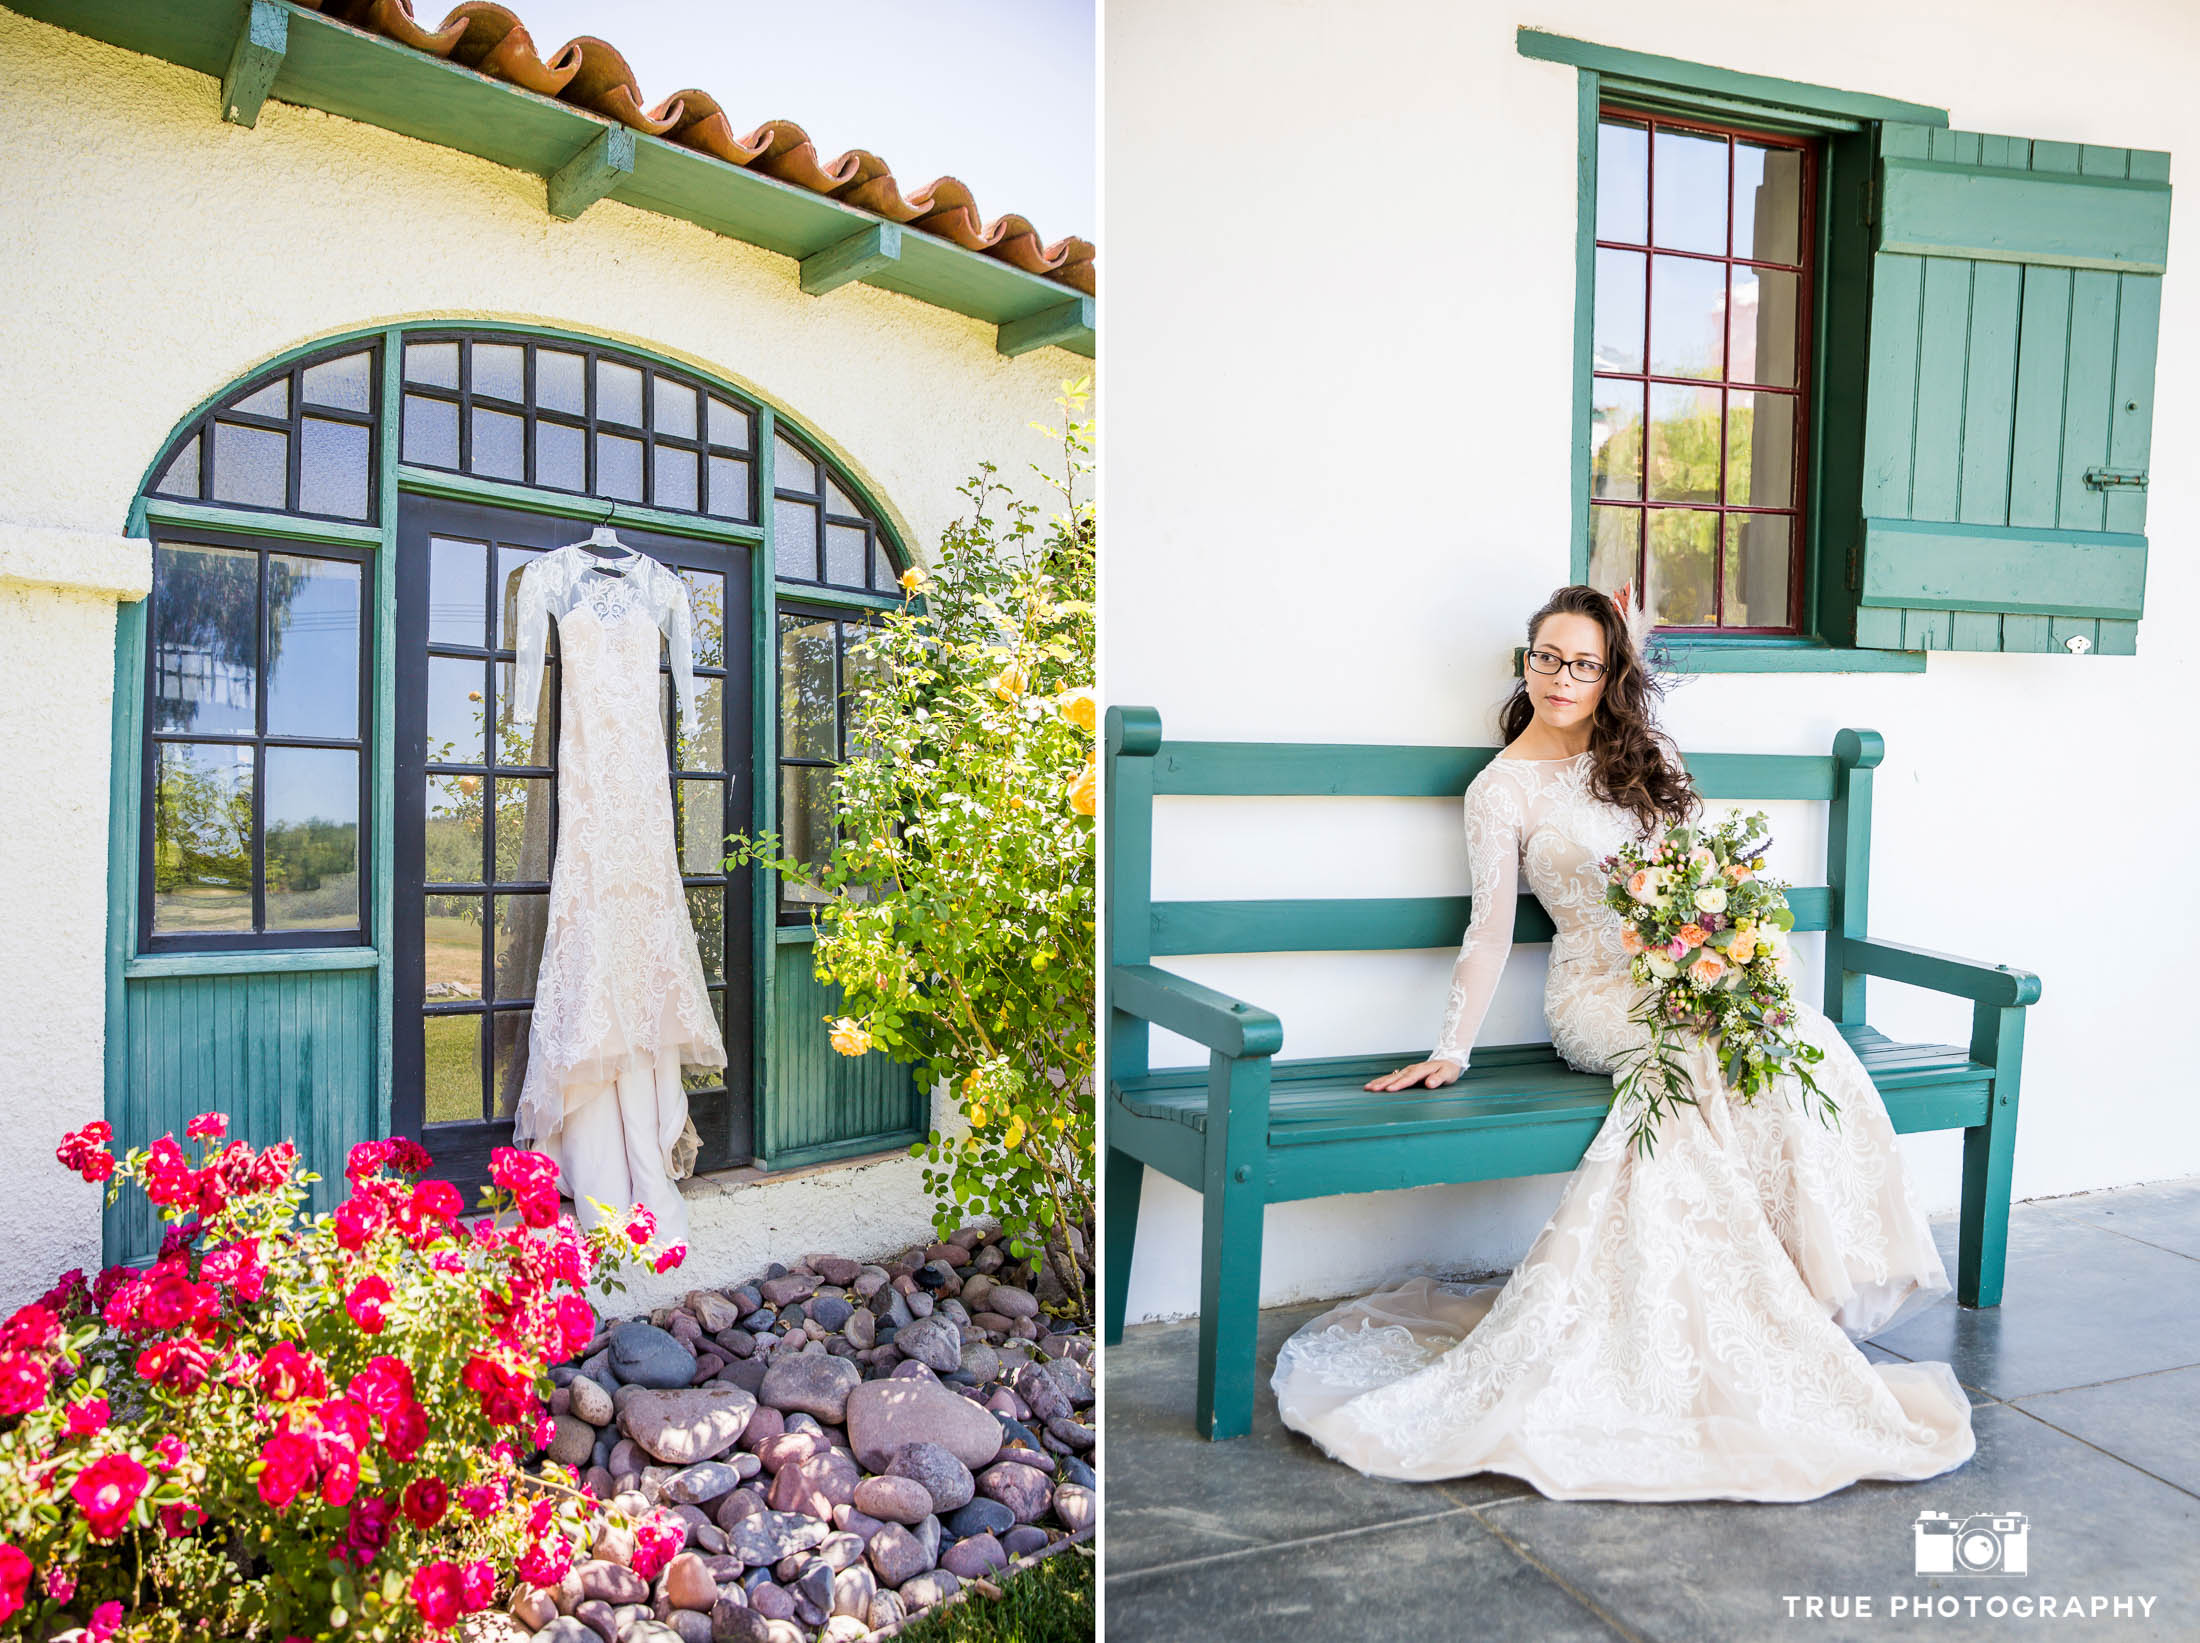 Spanish bride portrait with hanging sleeved wedding dress and rustic bouquet